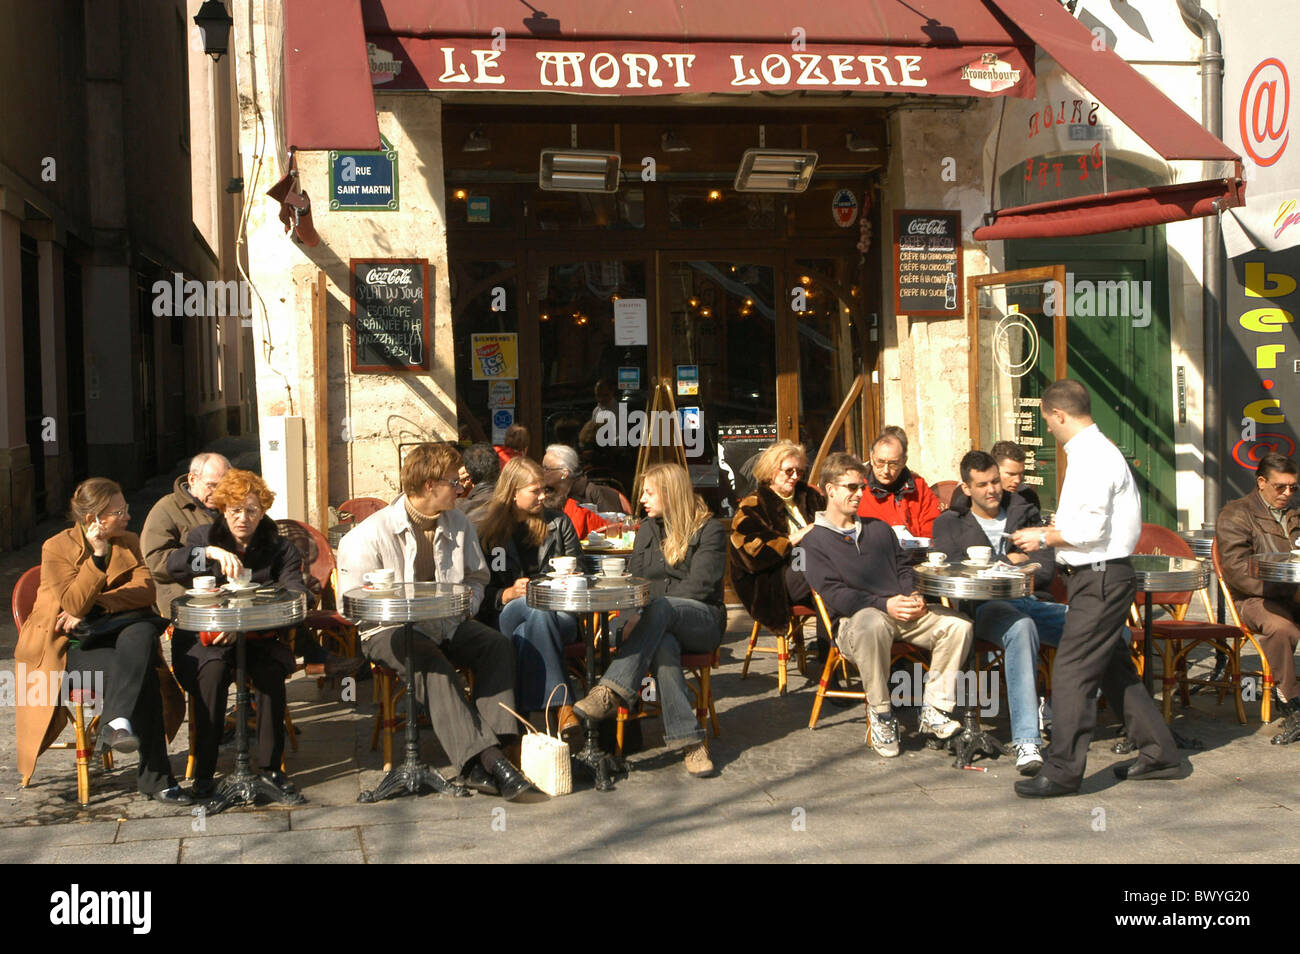 outside cafe France Europe guests company lives no model release Paris street cafe - Stock Image